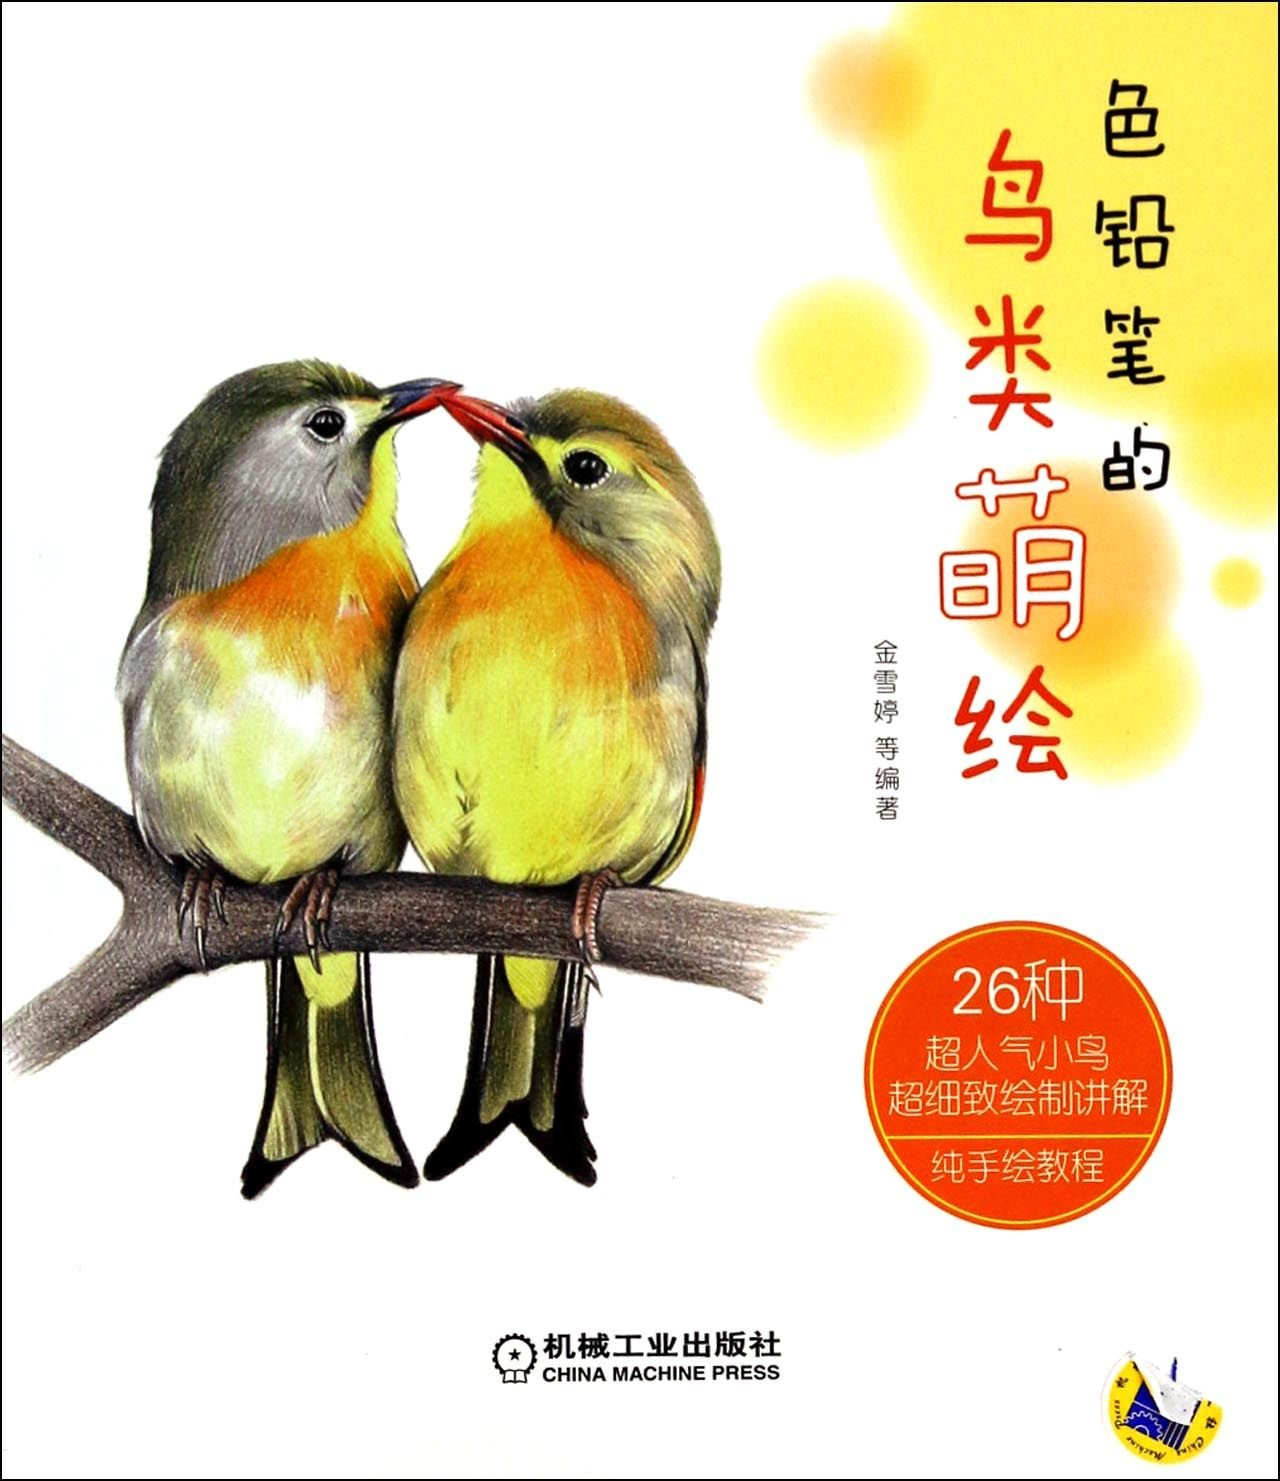 Genuine New Colored Pencil Drawing Birds Meng Chinese Edition Jin Xue Ting 9787111448952 Amazon Com Books